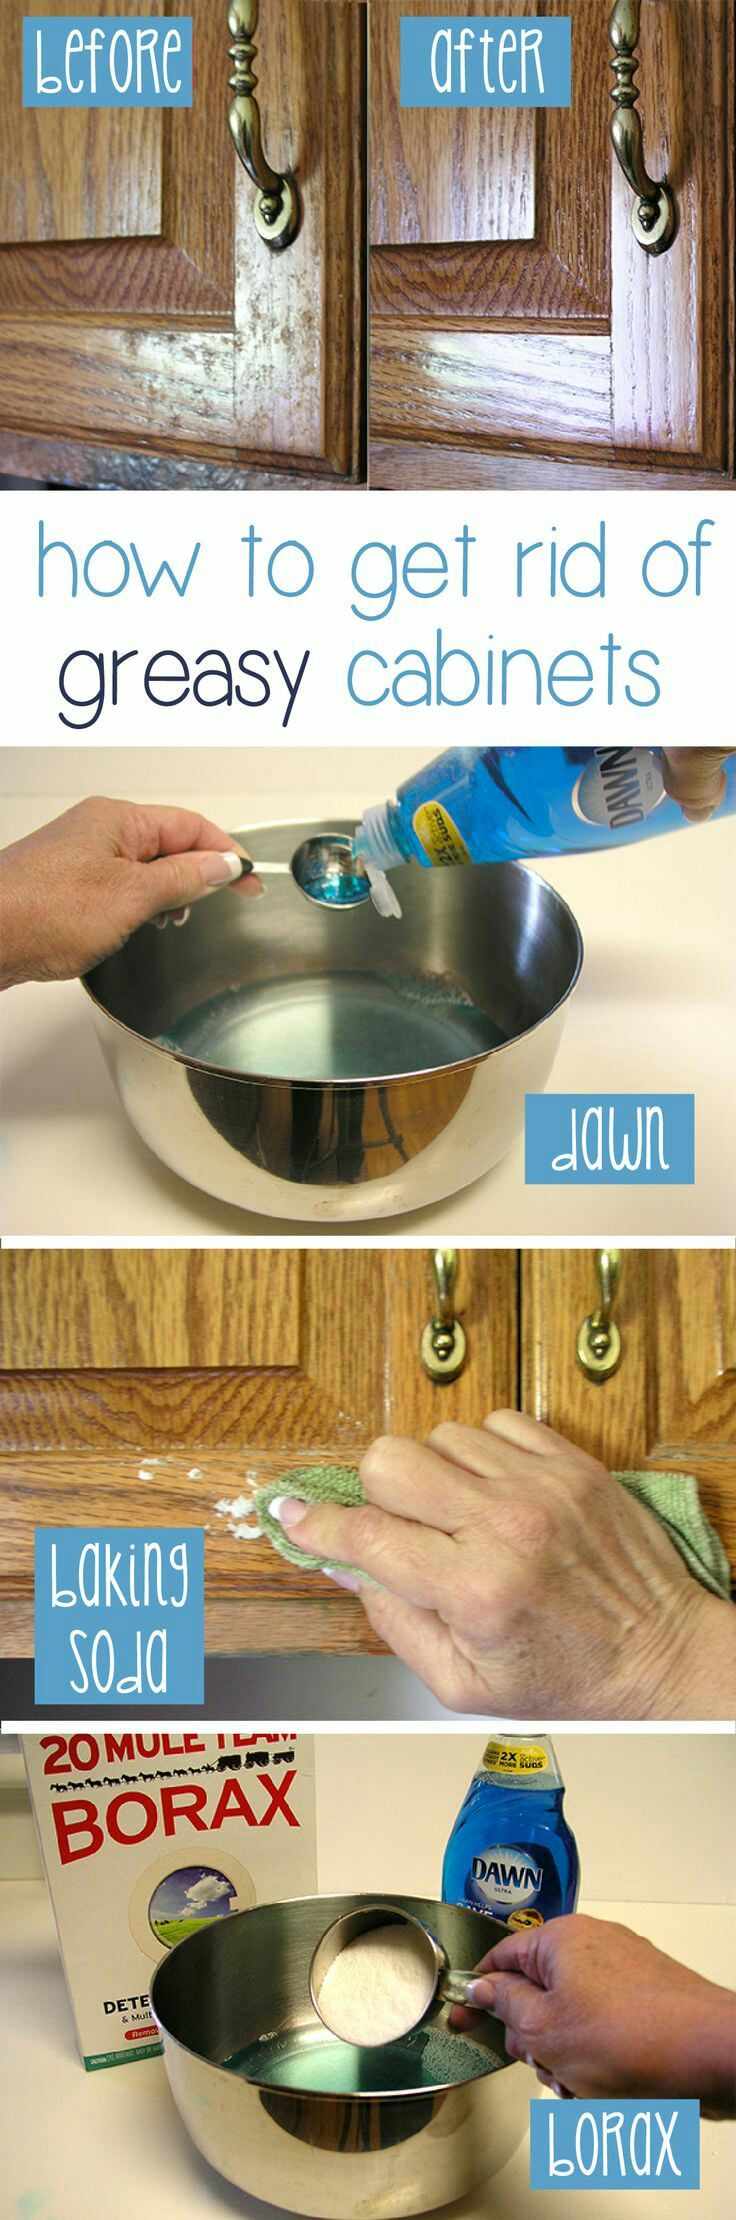 How To Clean Grease From Kitchen Cabinet Doors Cleaning Kitchen - How To Clean Greasy Kitchen Cabinets